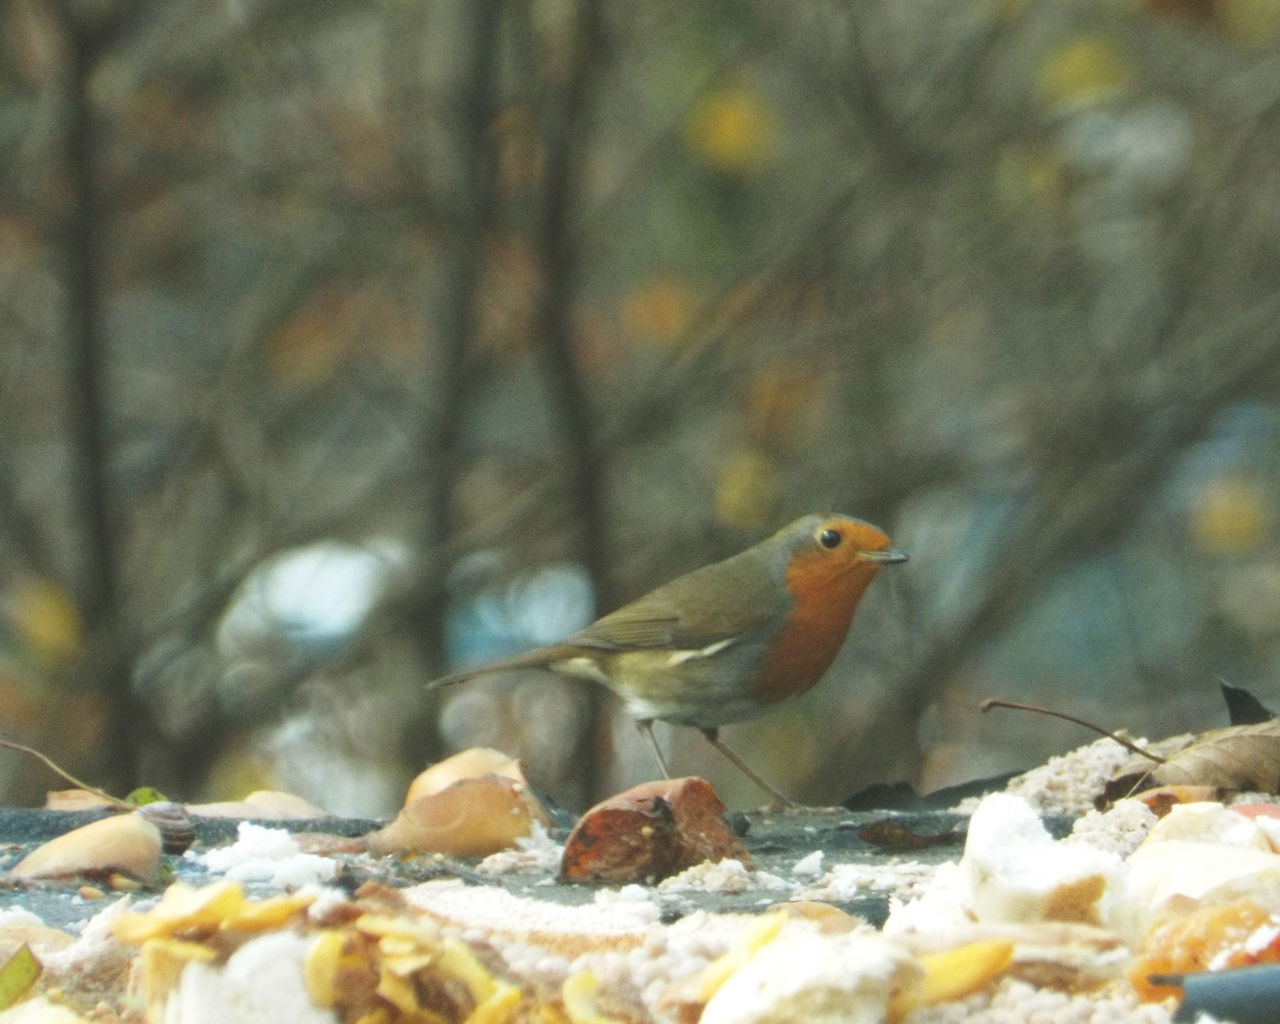 Bird Animals In The Wild Animal Wildlife Animal Themes Winter Nature Snow One Animal Perching No People Cold Temperature Outdoors Day Close-up November Animals In The Wild Nature Robin Redbreast Robin Non-urban Scene Birdwatching Garden Bird Photography OutdoorBirdfeeding